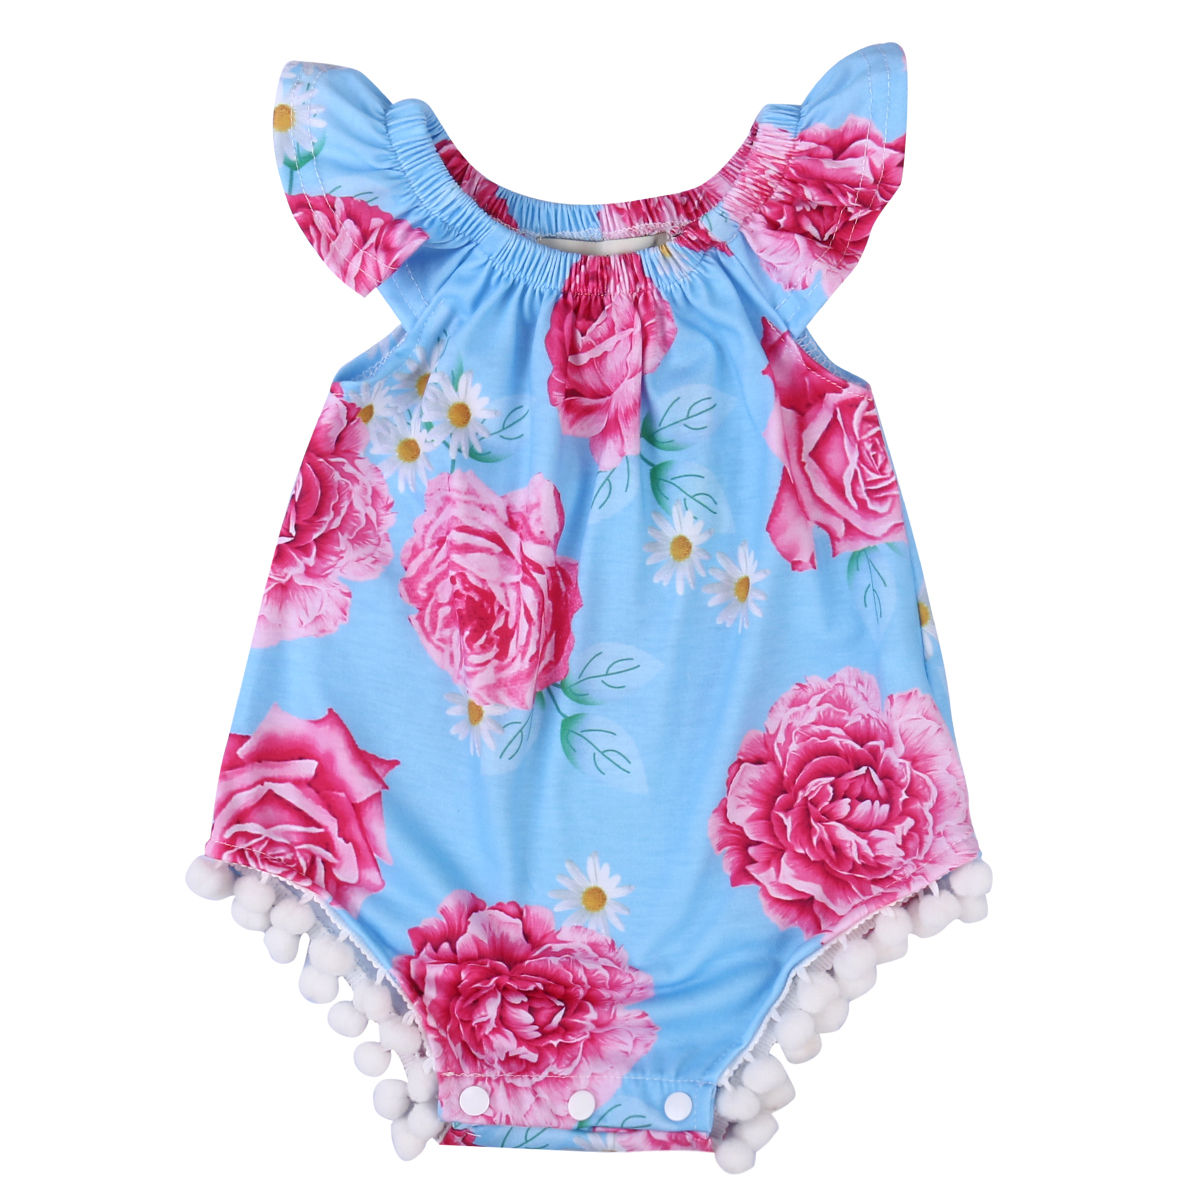 Lovely Newborn Baby Girl Clothes Floral Romper 2017 Summer Sleeveless Infant Bebes Toddler Kids Jumpsuit Outfit Sunsuit 0-24M summer newborn infant baby girl romper sleeveles cotton floral romper jumpsuit outfit playsuit clothes